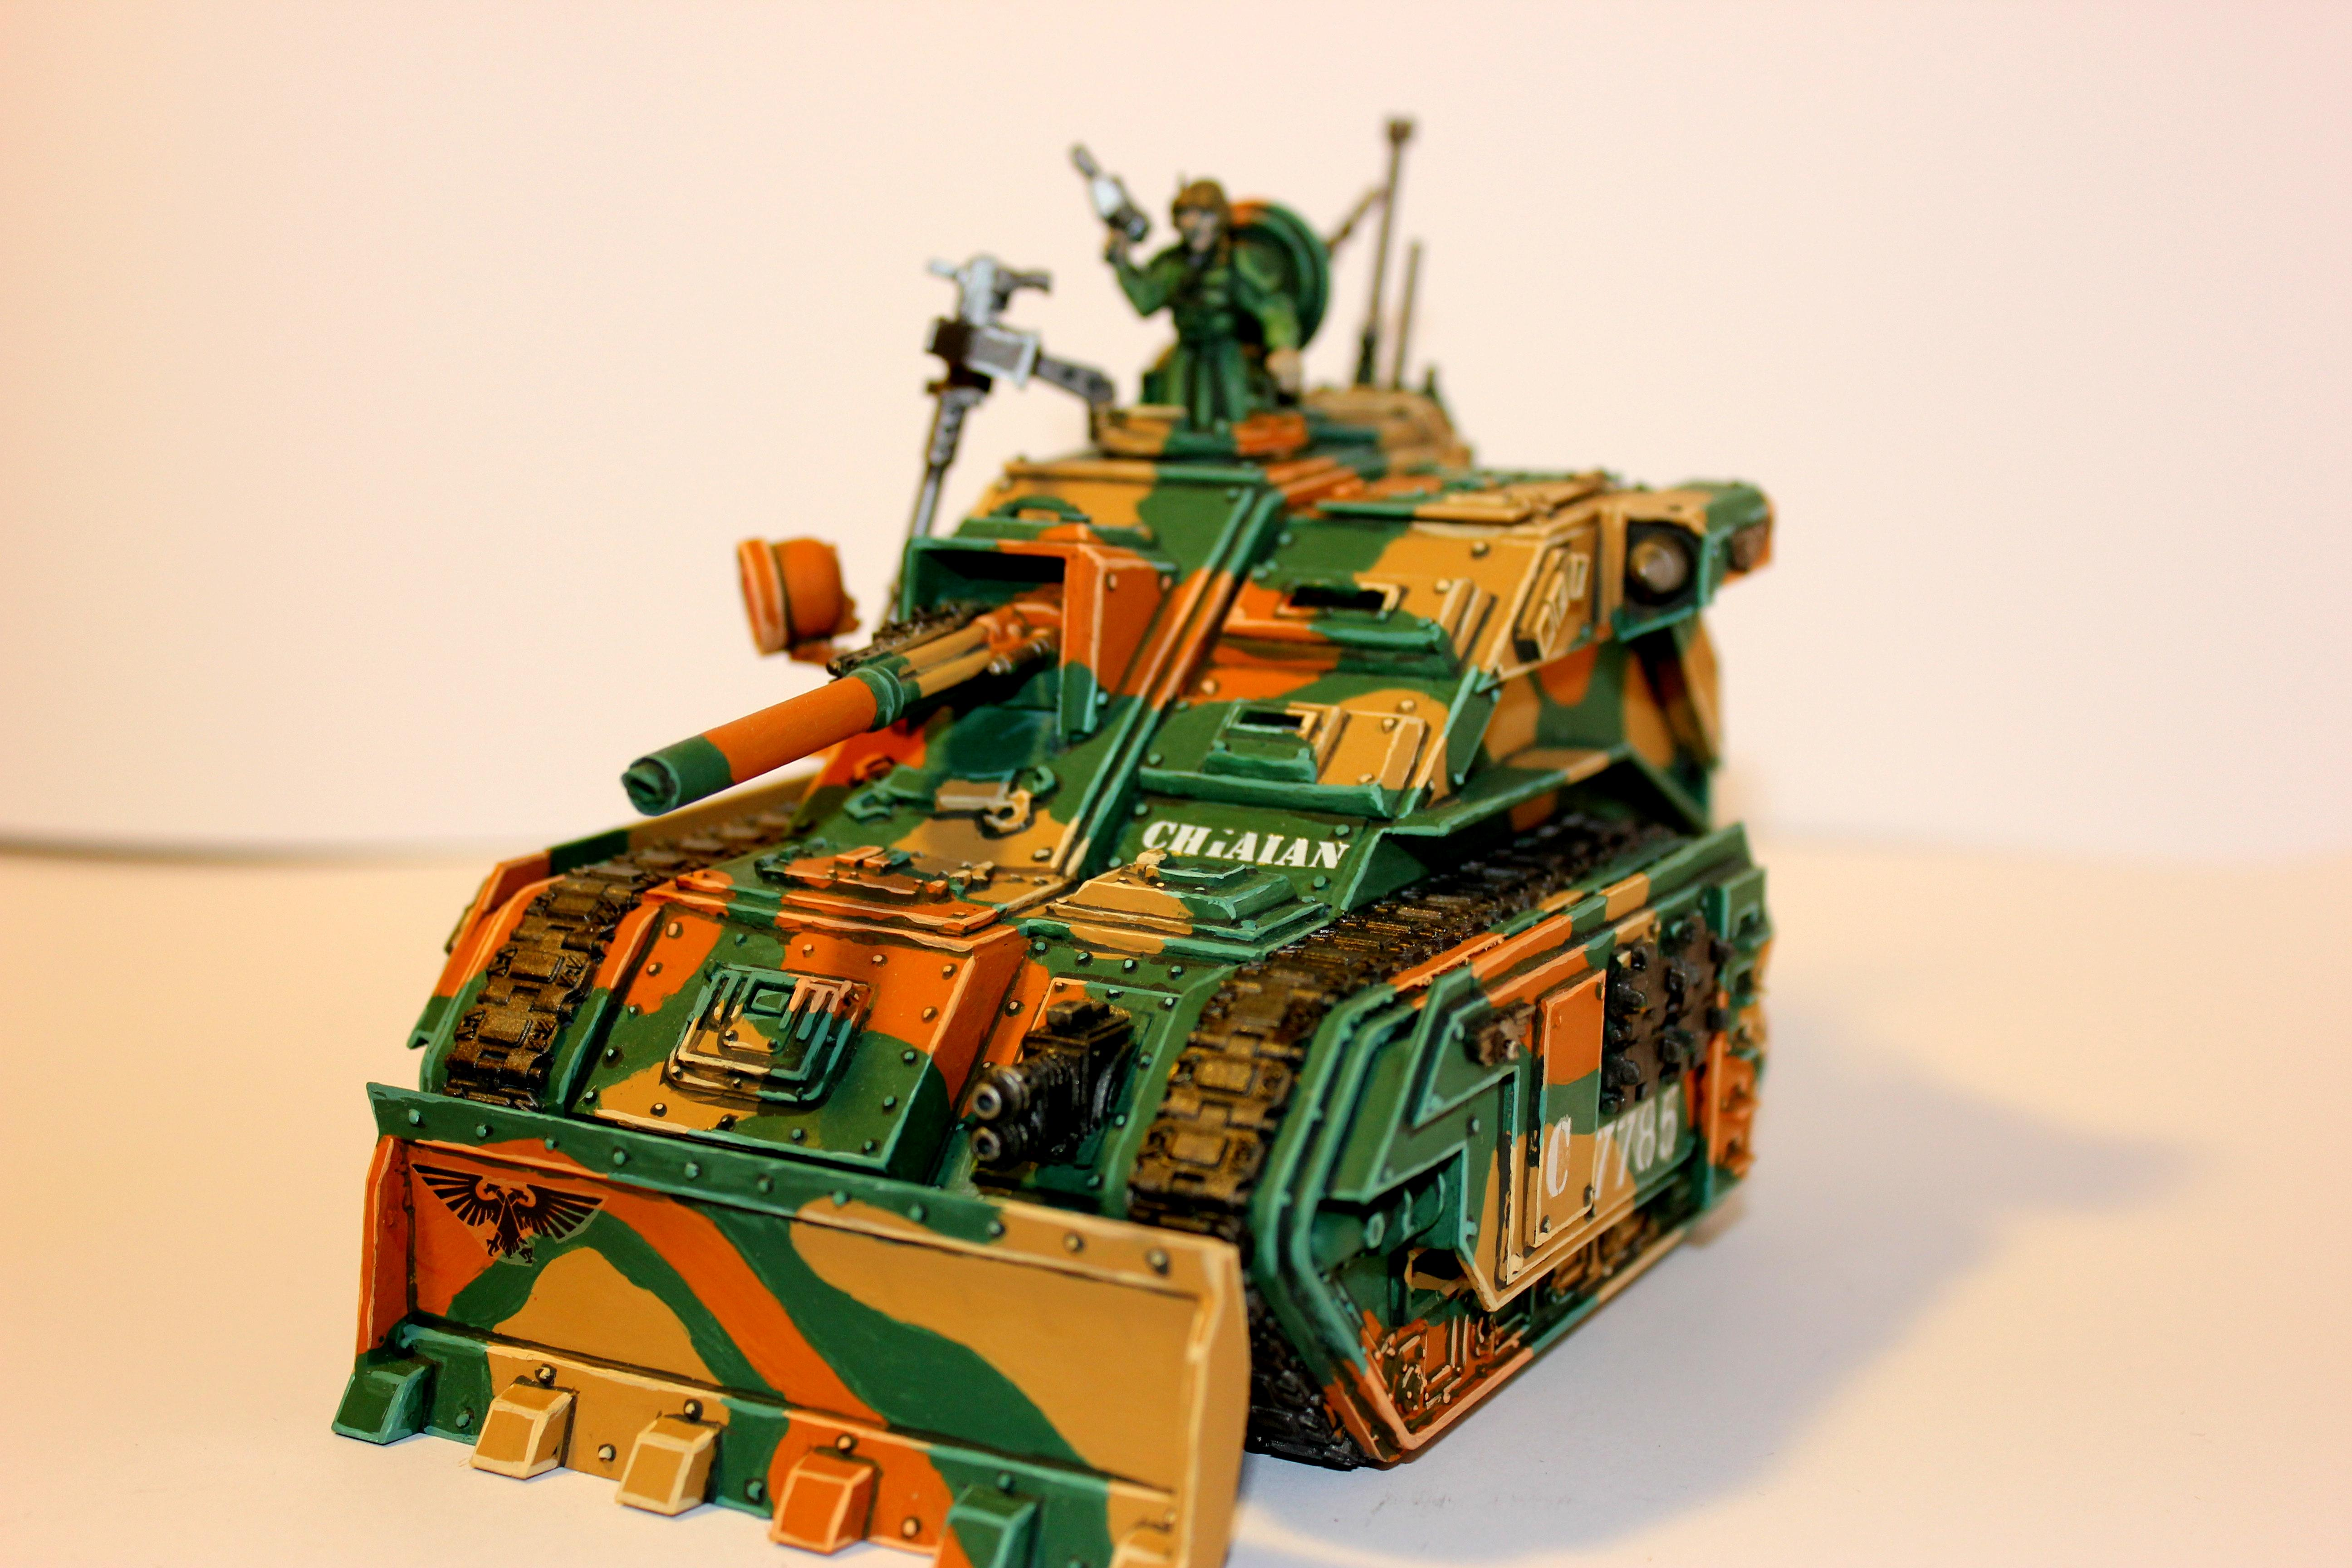 Astra Militarum, Cadians, Catachan, Chimäre, Chimera, Custom, Heavy Armour, Imperial Guard, Imperial Tank, Imperiale Armee, Machine Gun, Melter, Mordia, Panzer, Truppentransporter, Umbau, Warhammer 40,000